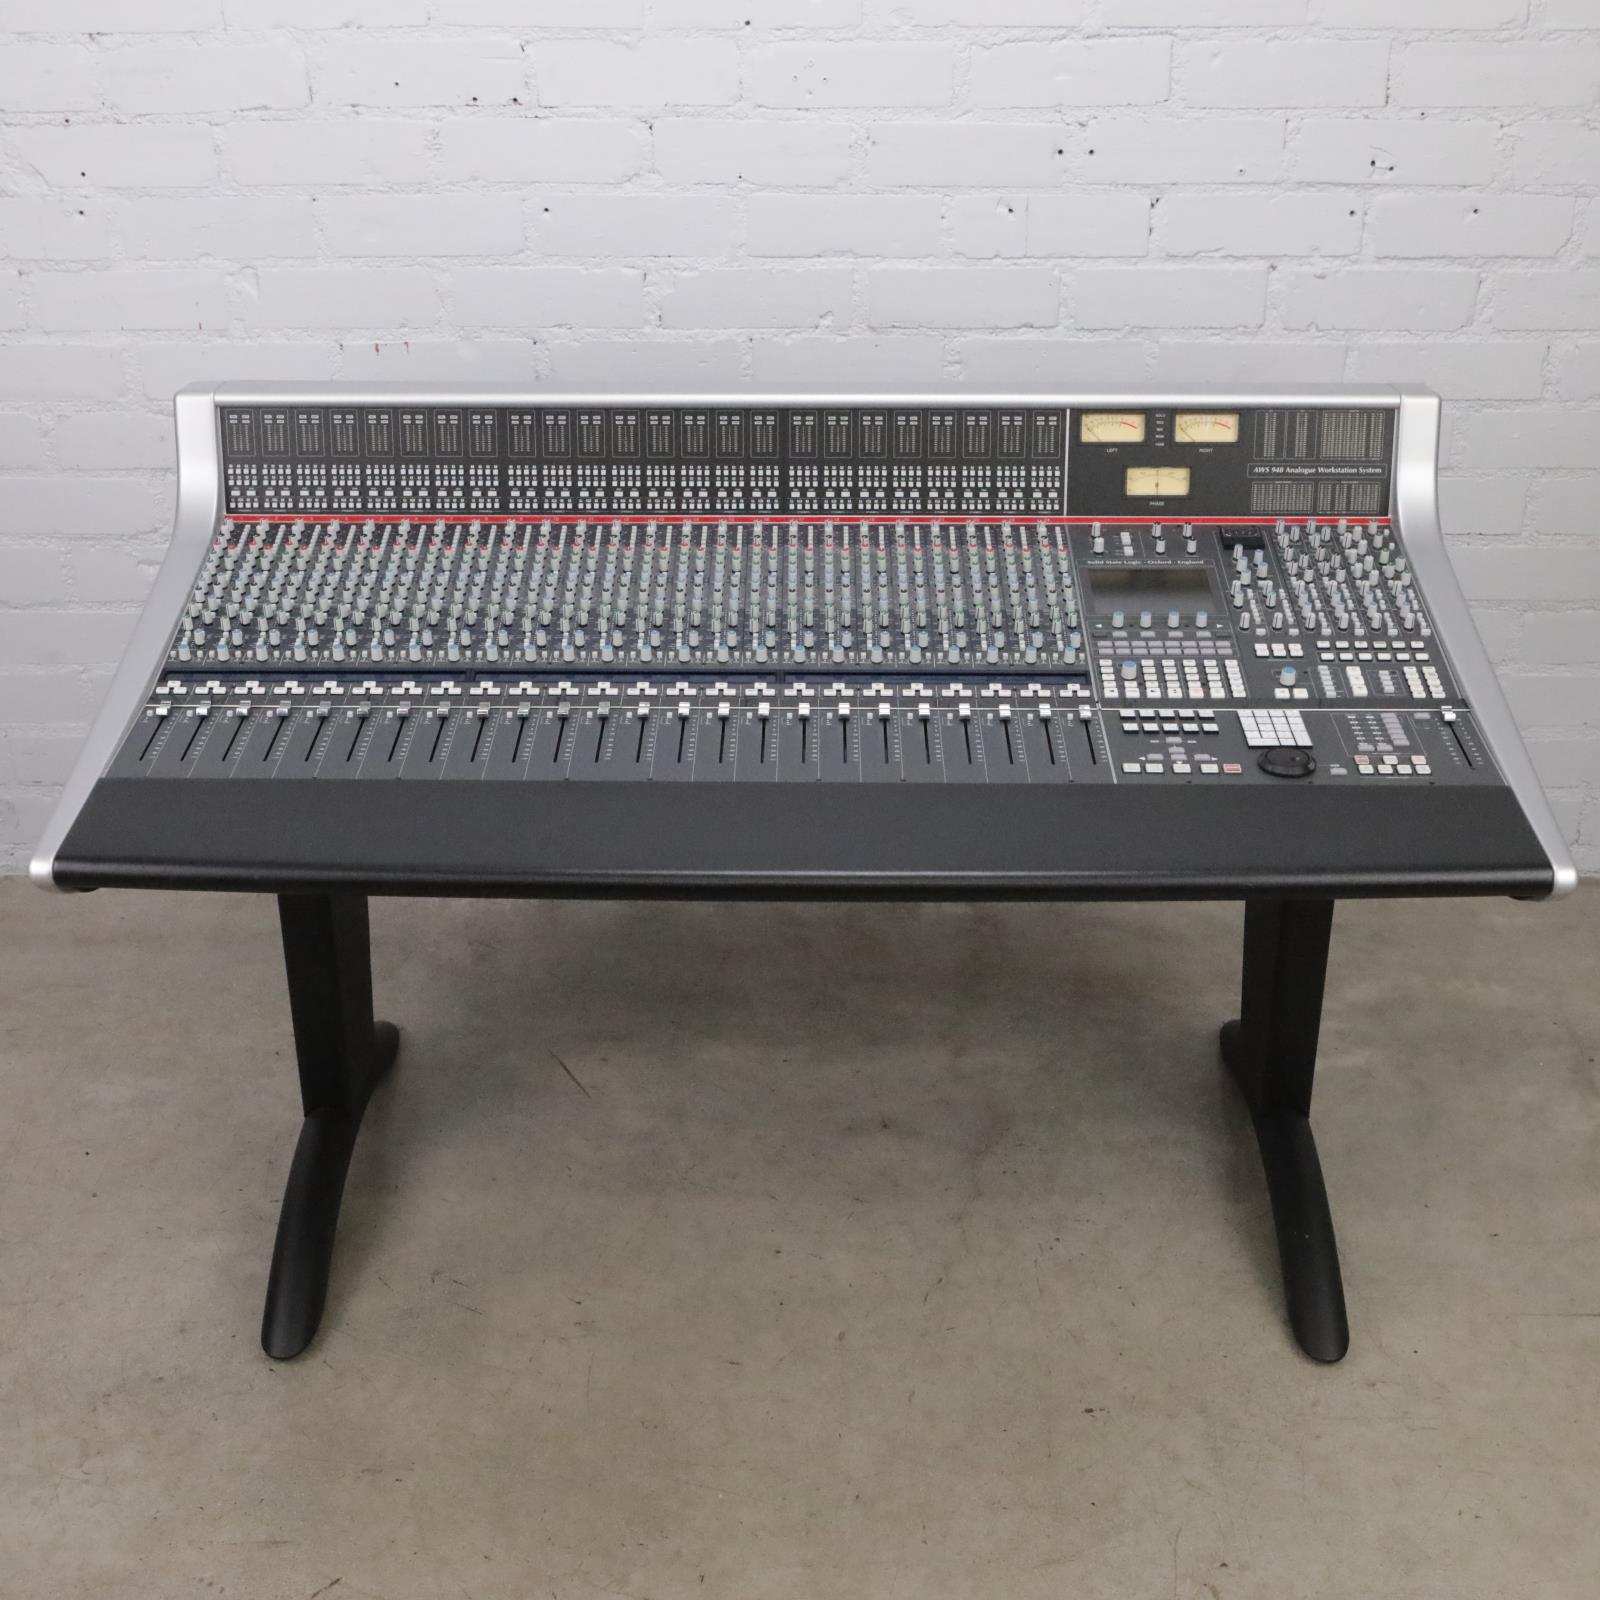 Solid State Logic SSL AWS 948 Analogue Workstation System Console #43764